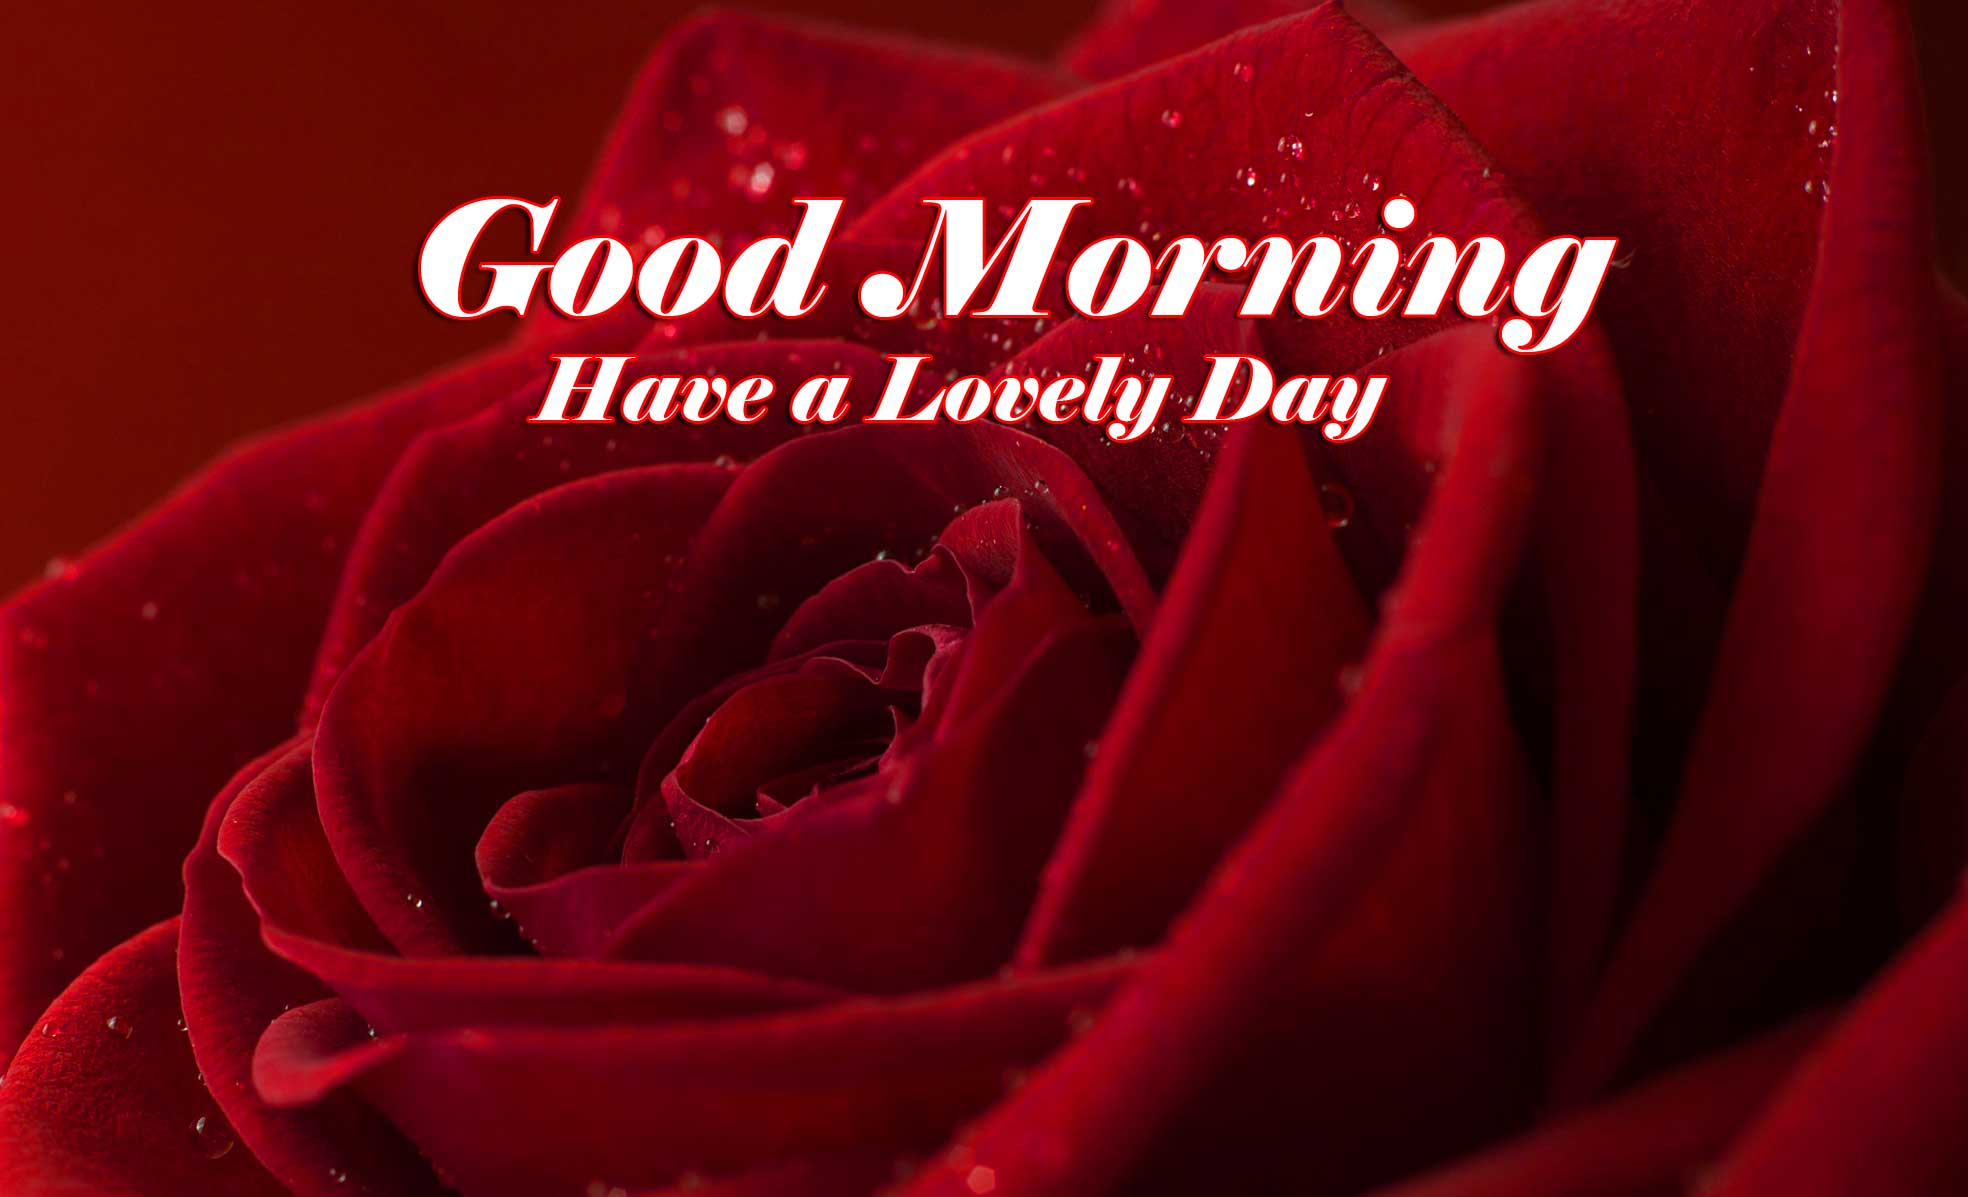 Beautiful for Girlfriend Red Rose Good Morning Wallpaper Free Download